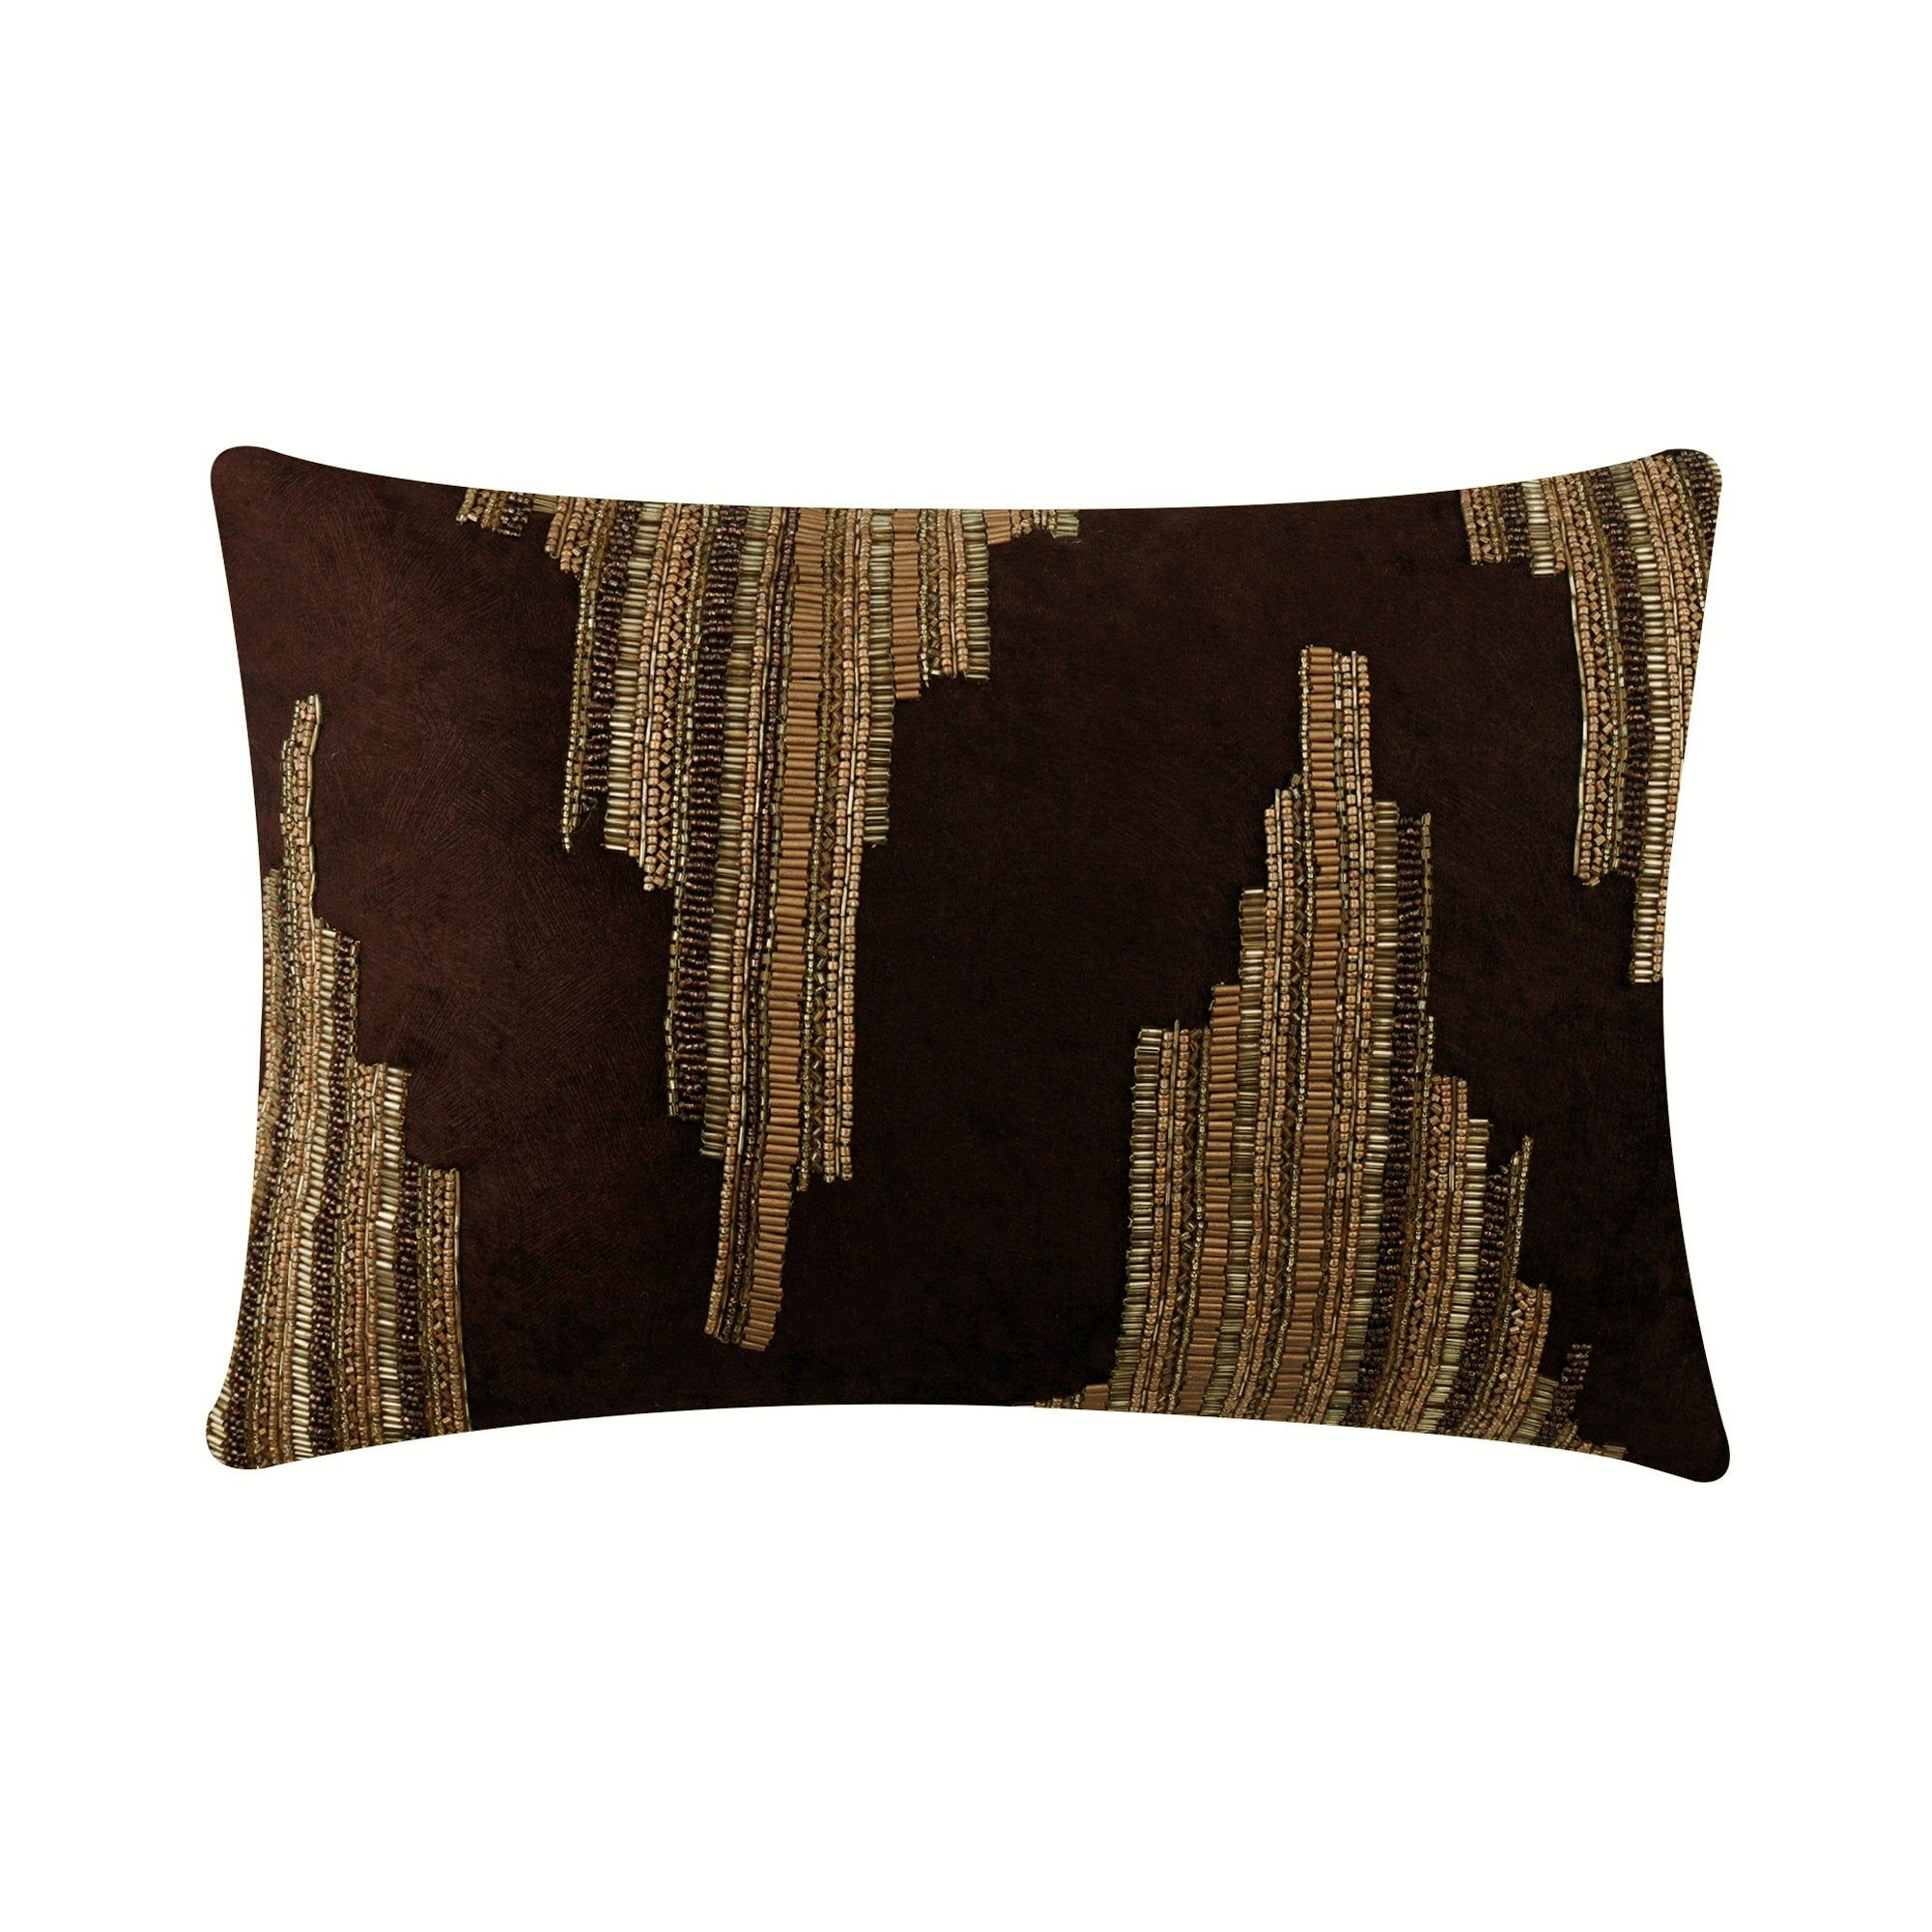 Decorative Oblong Lumbar Rectangle Throw Pillow Cover Couch Etsy In 2021 Lumbar Pillow Cover Brown Throw Pillows Decorative Throw Pillow Covers Brown and gold throw pillows